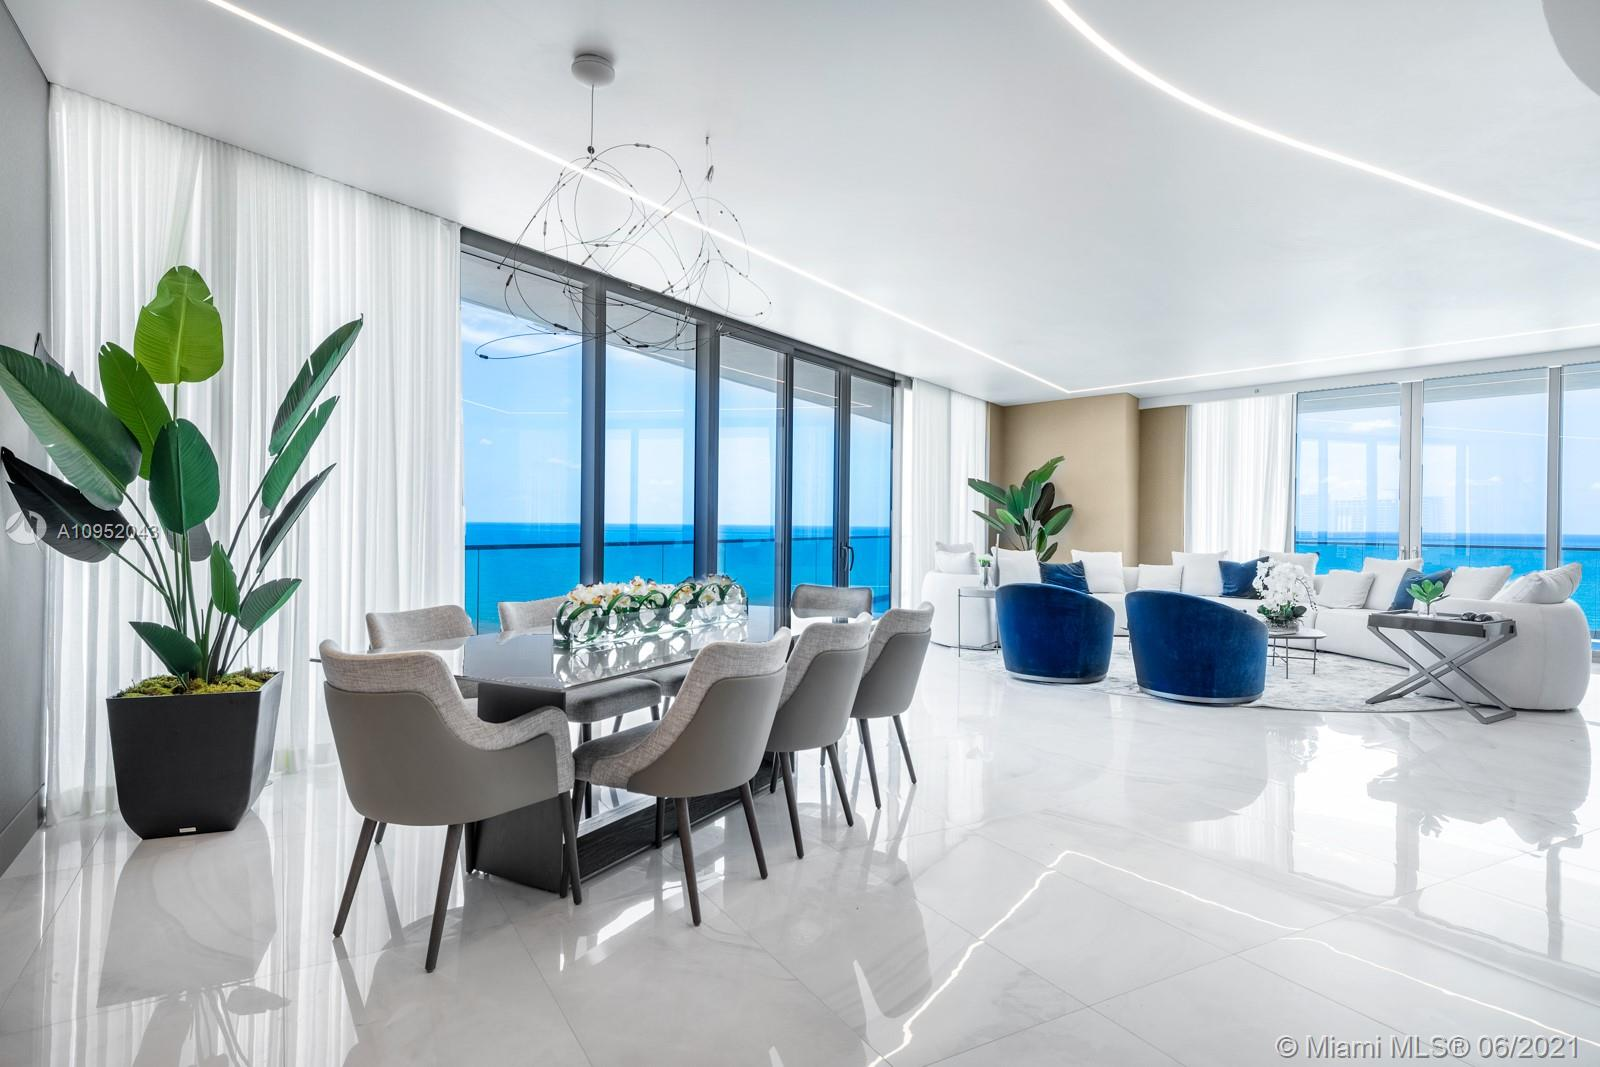 One of the most beautiful residences at the one and only Residences by Armani Casa in Sunny Isles Beach. This corner apartment is a brand new 4 bedroom, with 5.5 baths and laundry, featuring 3,748 sq. ft. plus 1400 sq. ft. in terraces, totaling 5,148 sq. ft. Showcases ocean and city views with two large terraces, floor to ceiling windows, split floor plan, volume ceilings, and summer kitchen on the balcony. Sophisticated elegance in the most sought after building in Sunny Isles.  Curated and designed by Adriana Hoyos, this flawless finish transmits a unique, modern and sophisticated look and feel for very special clientele. Full service building with room service, party room, game room, 2 level spa, restaurant, theatre, cigar & wine room, kids play room & beach cabanas.